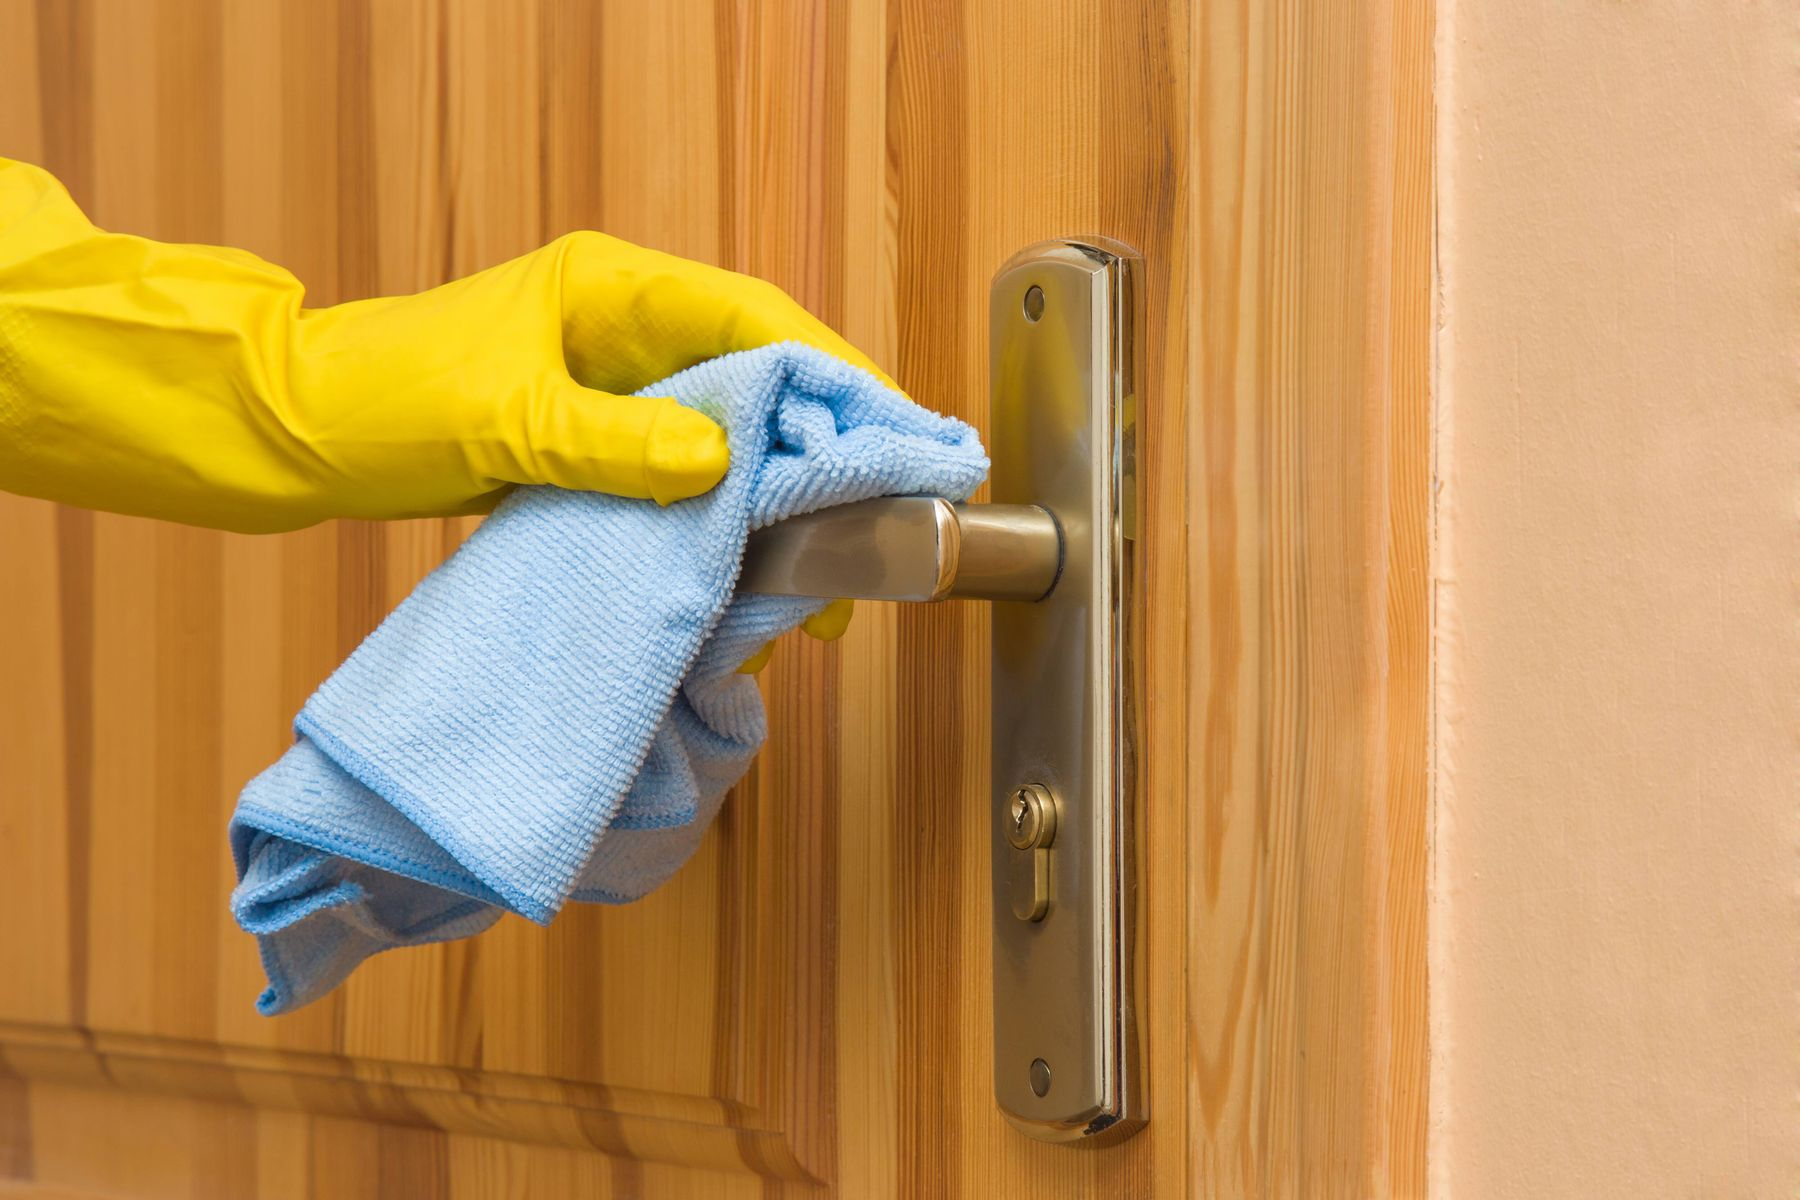 Does your bathroom door feel dirty and sticky? Check out how you can clean it easily!